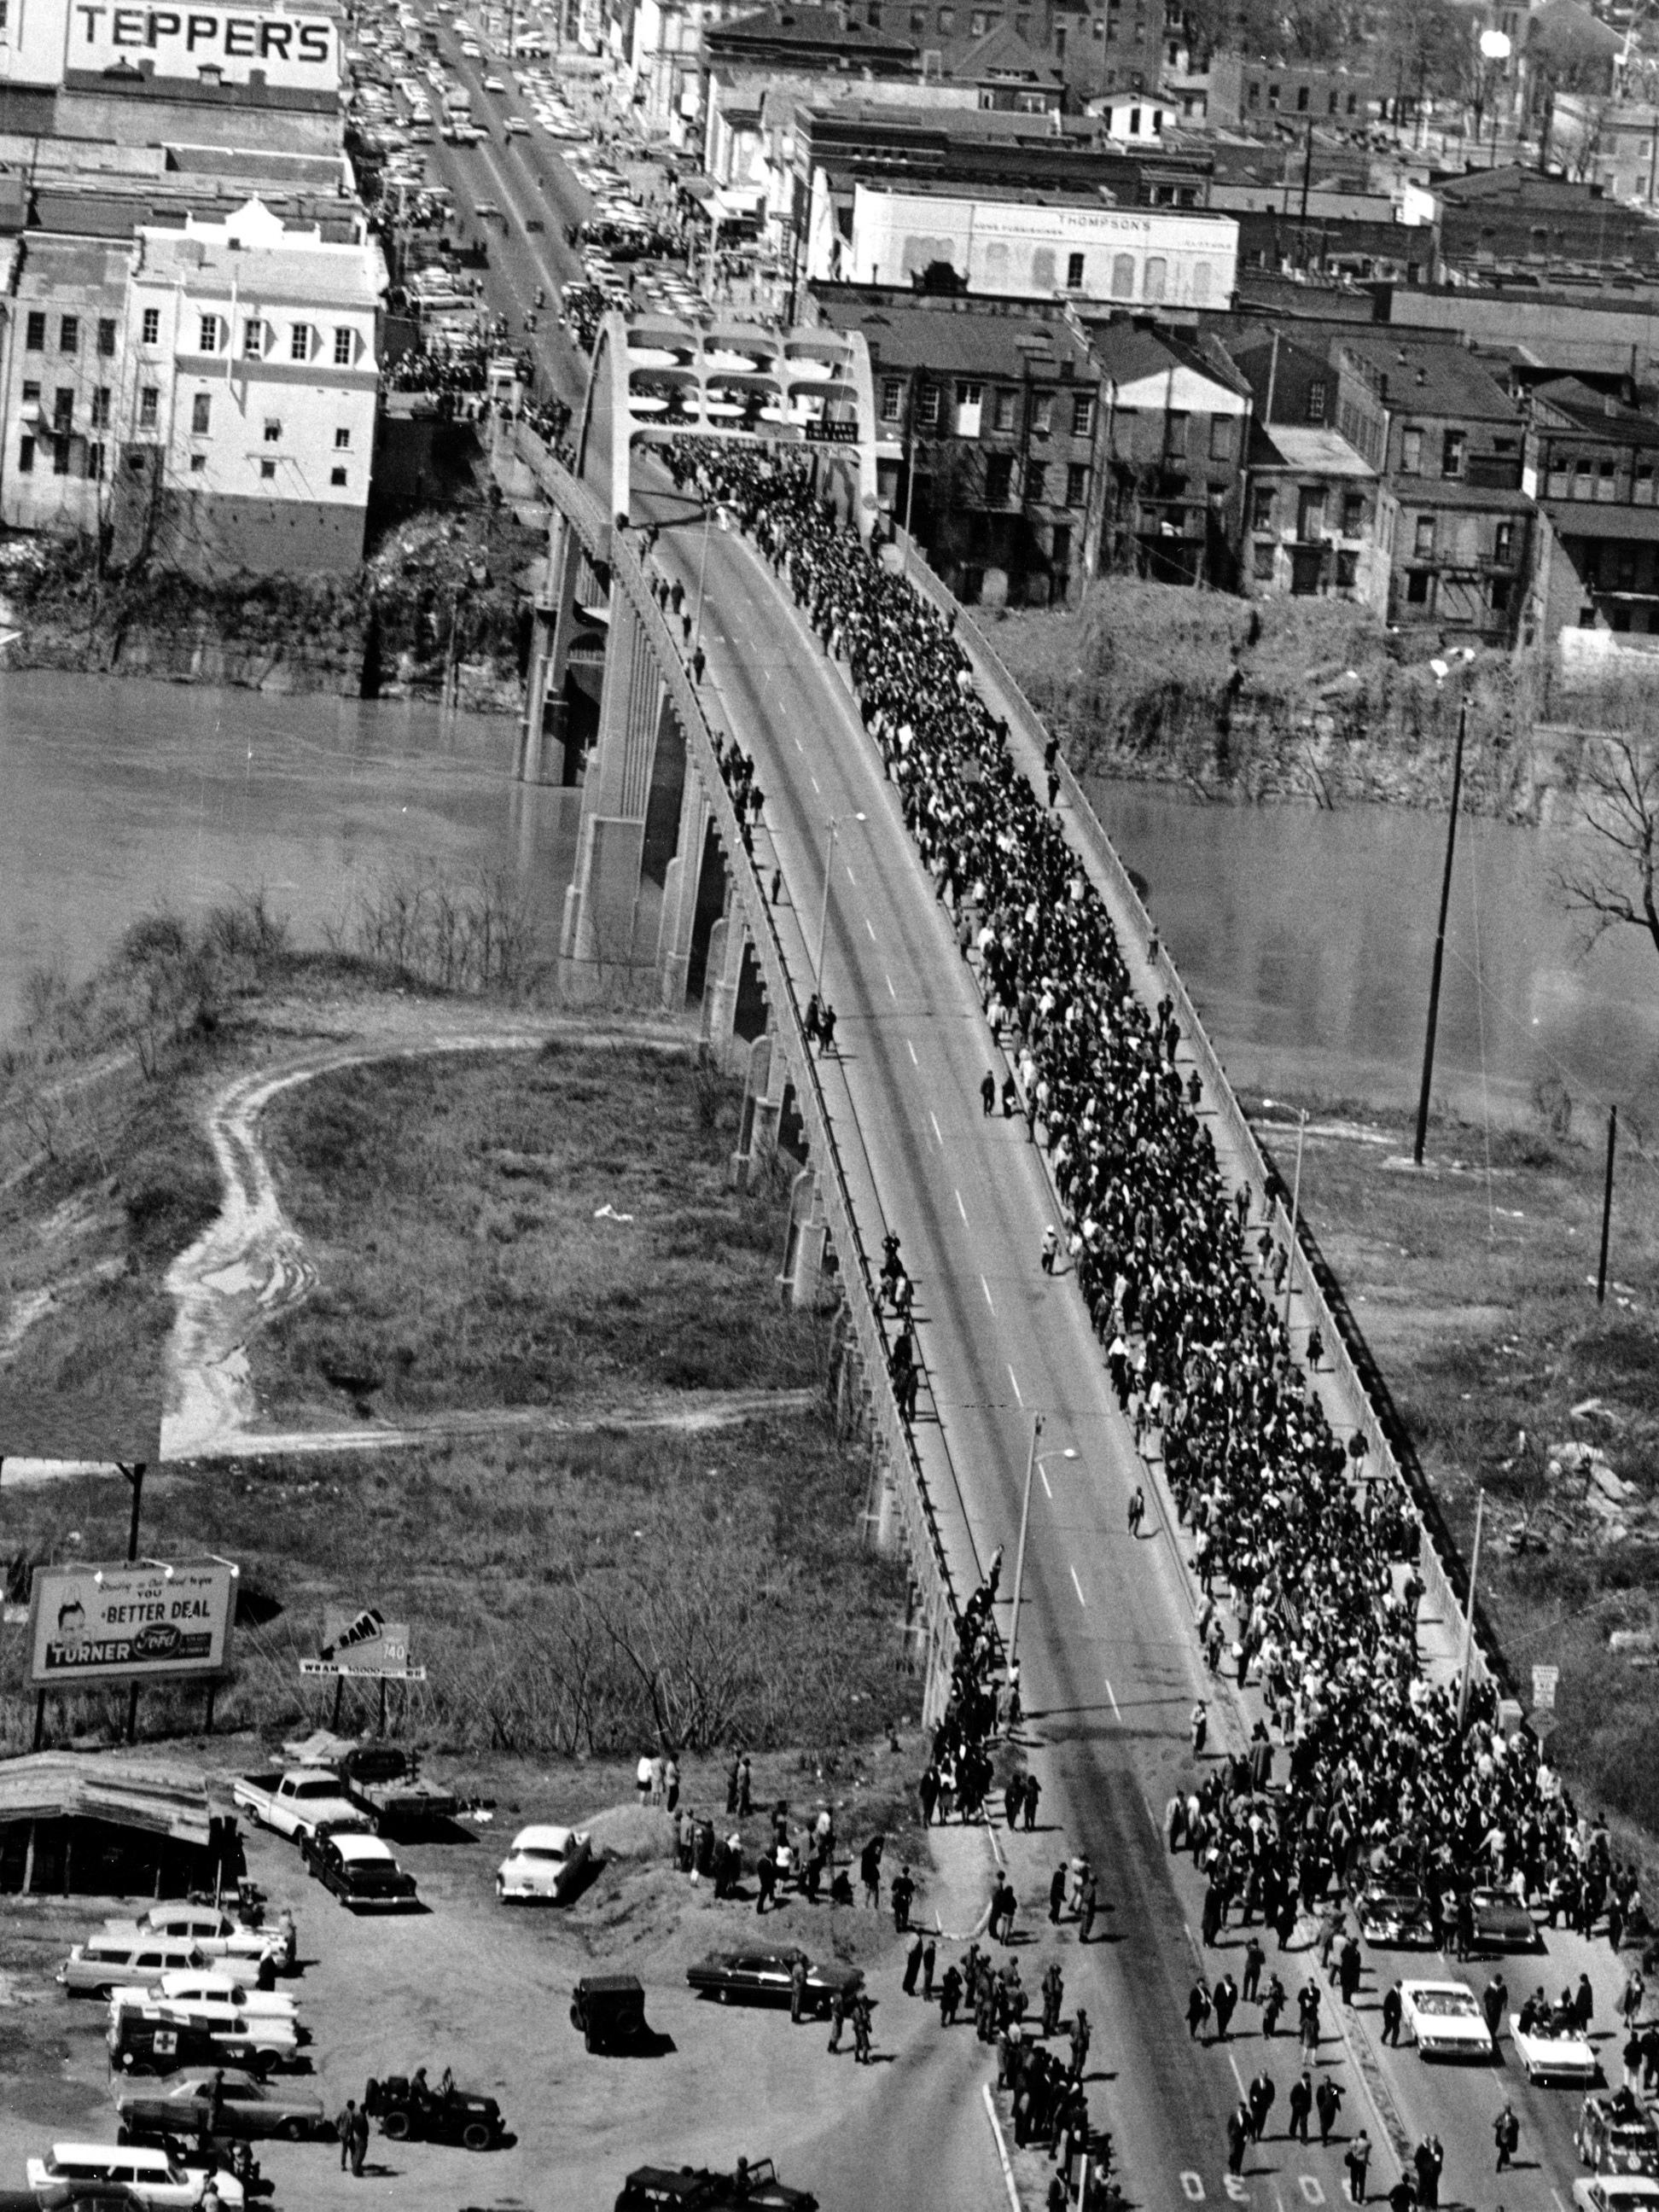 selma march See photos from the selma to montgomery marches, which were held to protest discriminatory practices that prevented many black people from voting in the south.